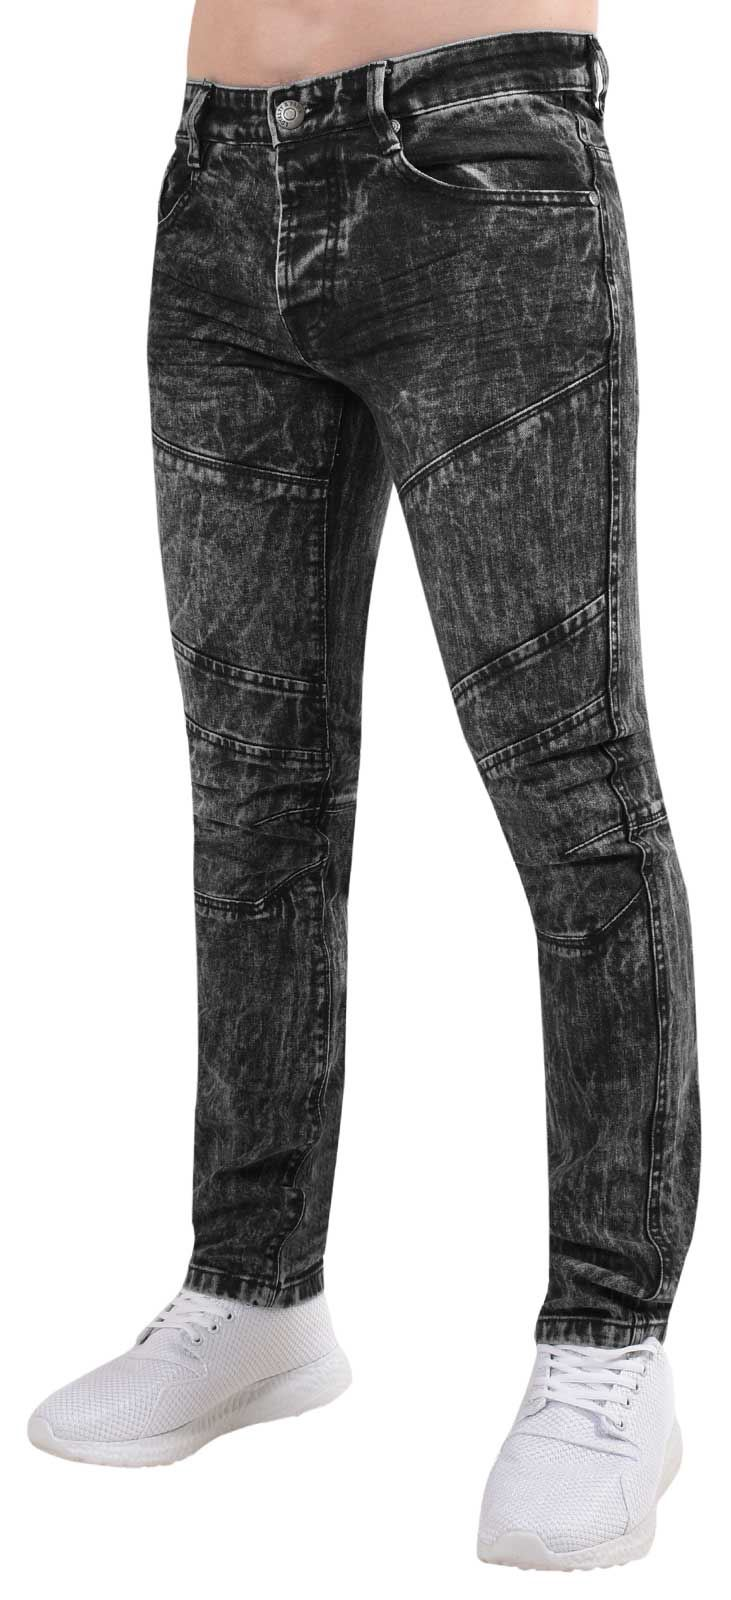 163d0cc88ab Mens Loyalty   Faith Slim Fit Jeans Ripped Cotton Stretch Denim ...